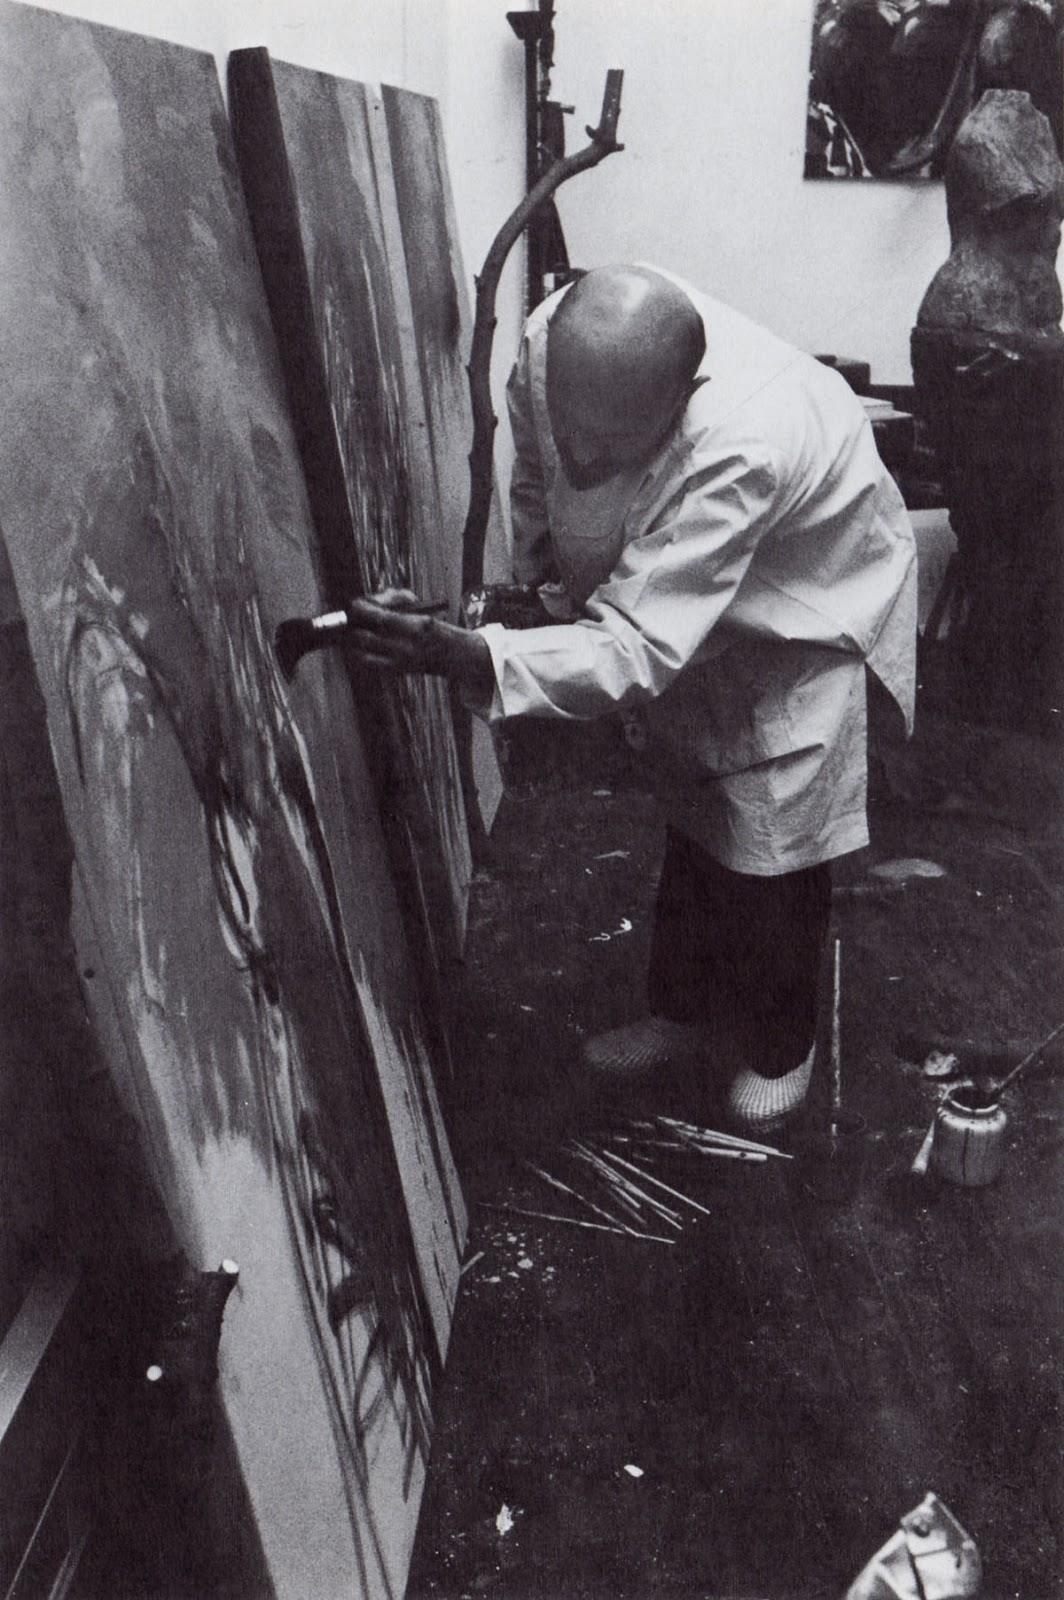 Jim Dine painting in his studio, 1983